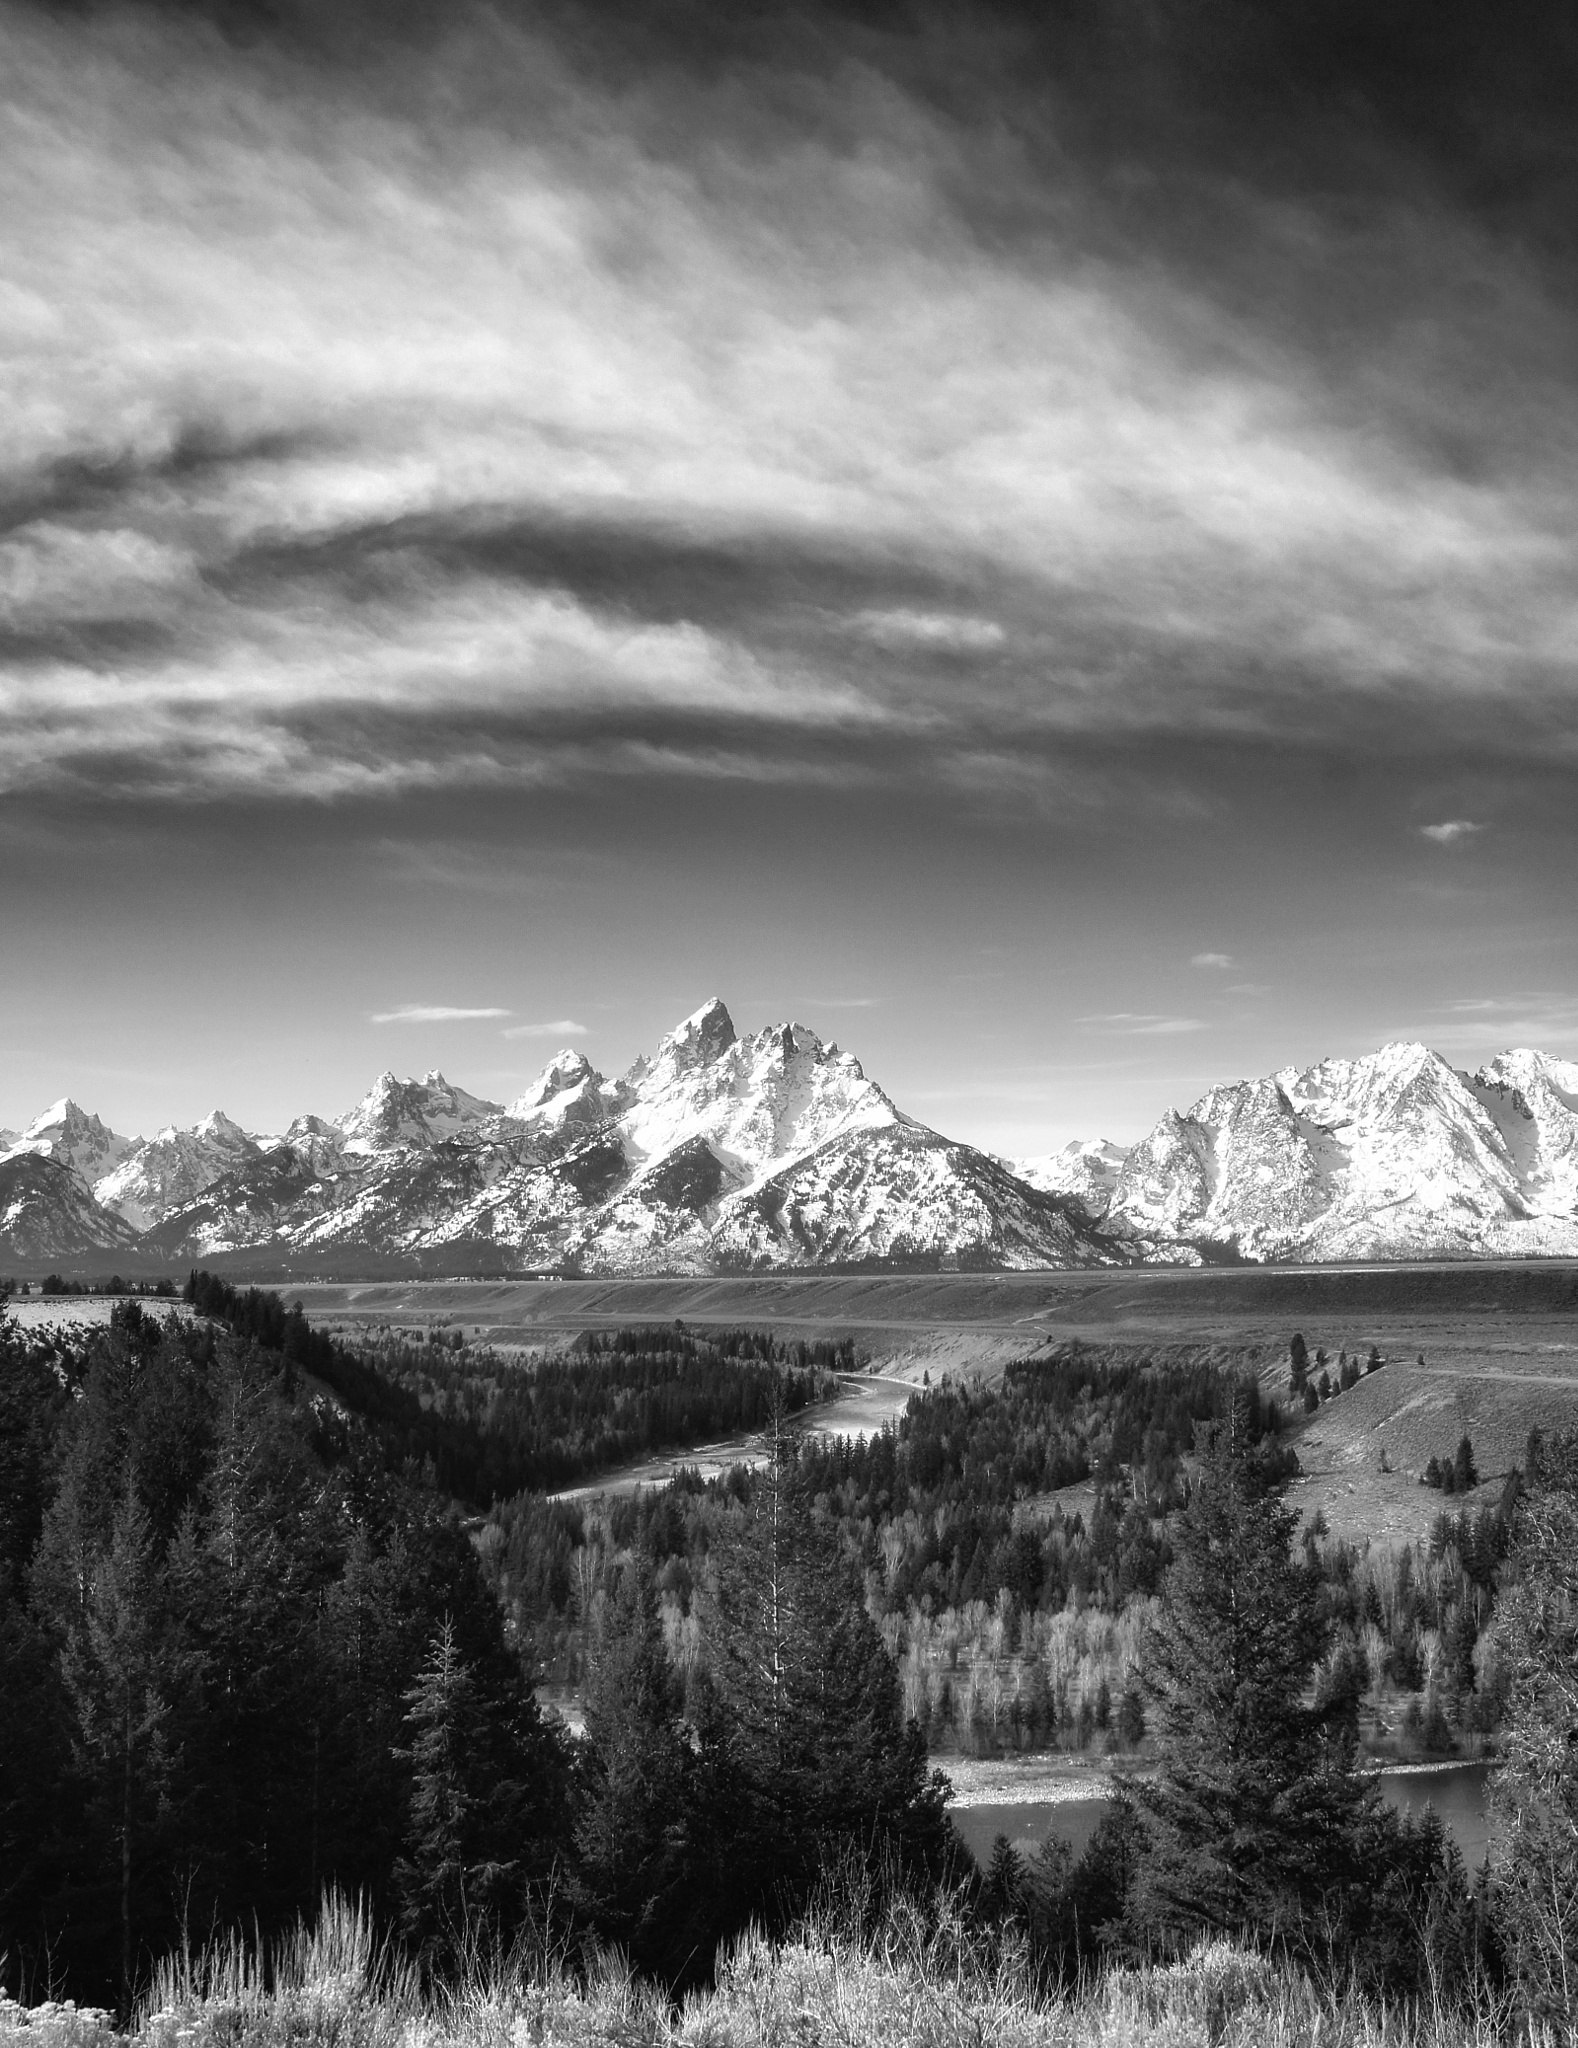 The Tetons (portrait) by Bary_B